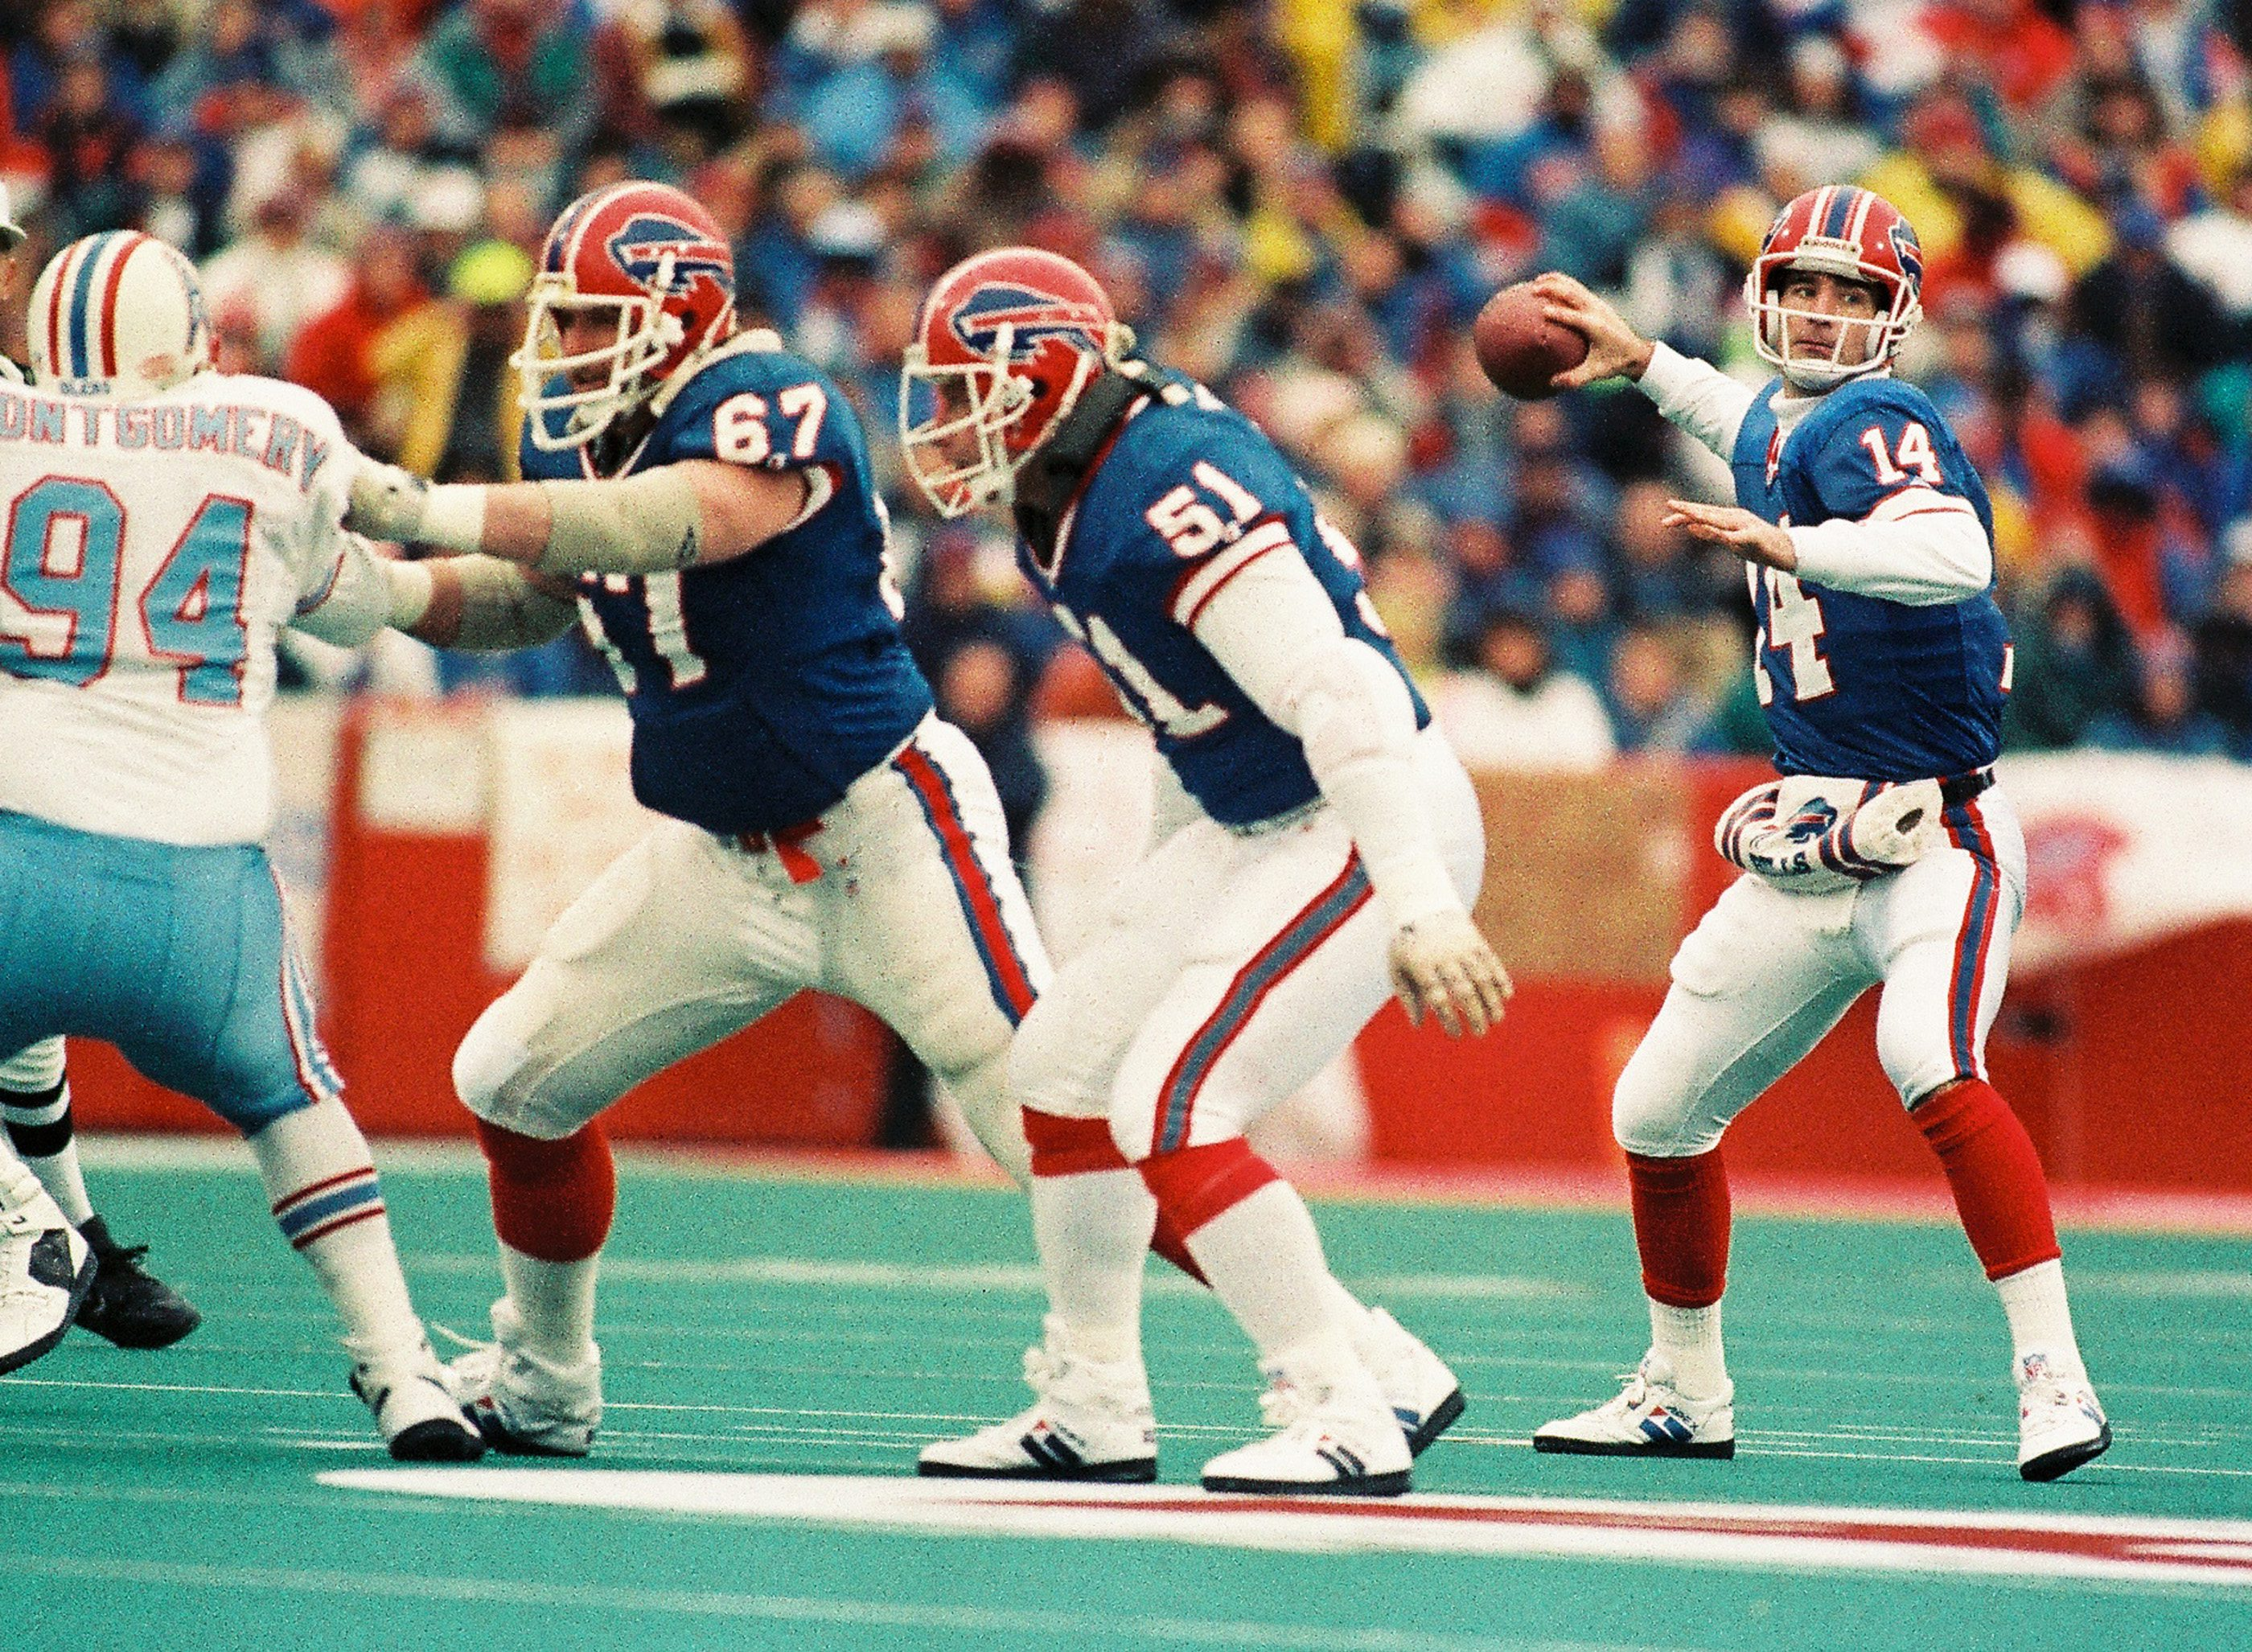 Bills quarterback Frank Reich throws a pass in the fourth quarter in the comeback victory against the Houston Oilers. (James P. McCoy/Buffalo News)